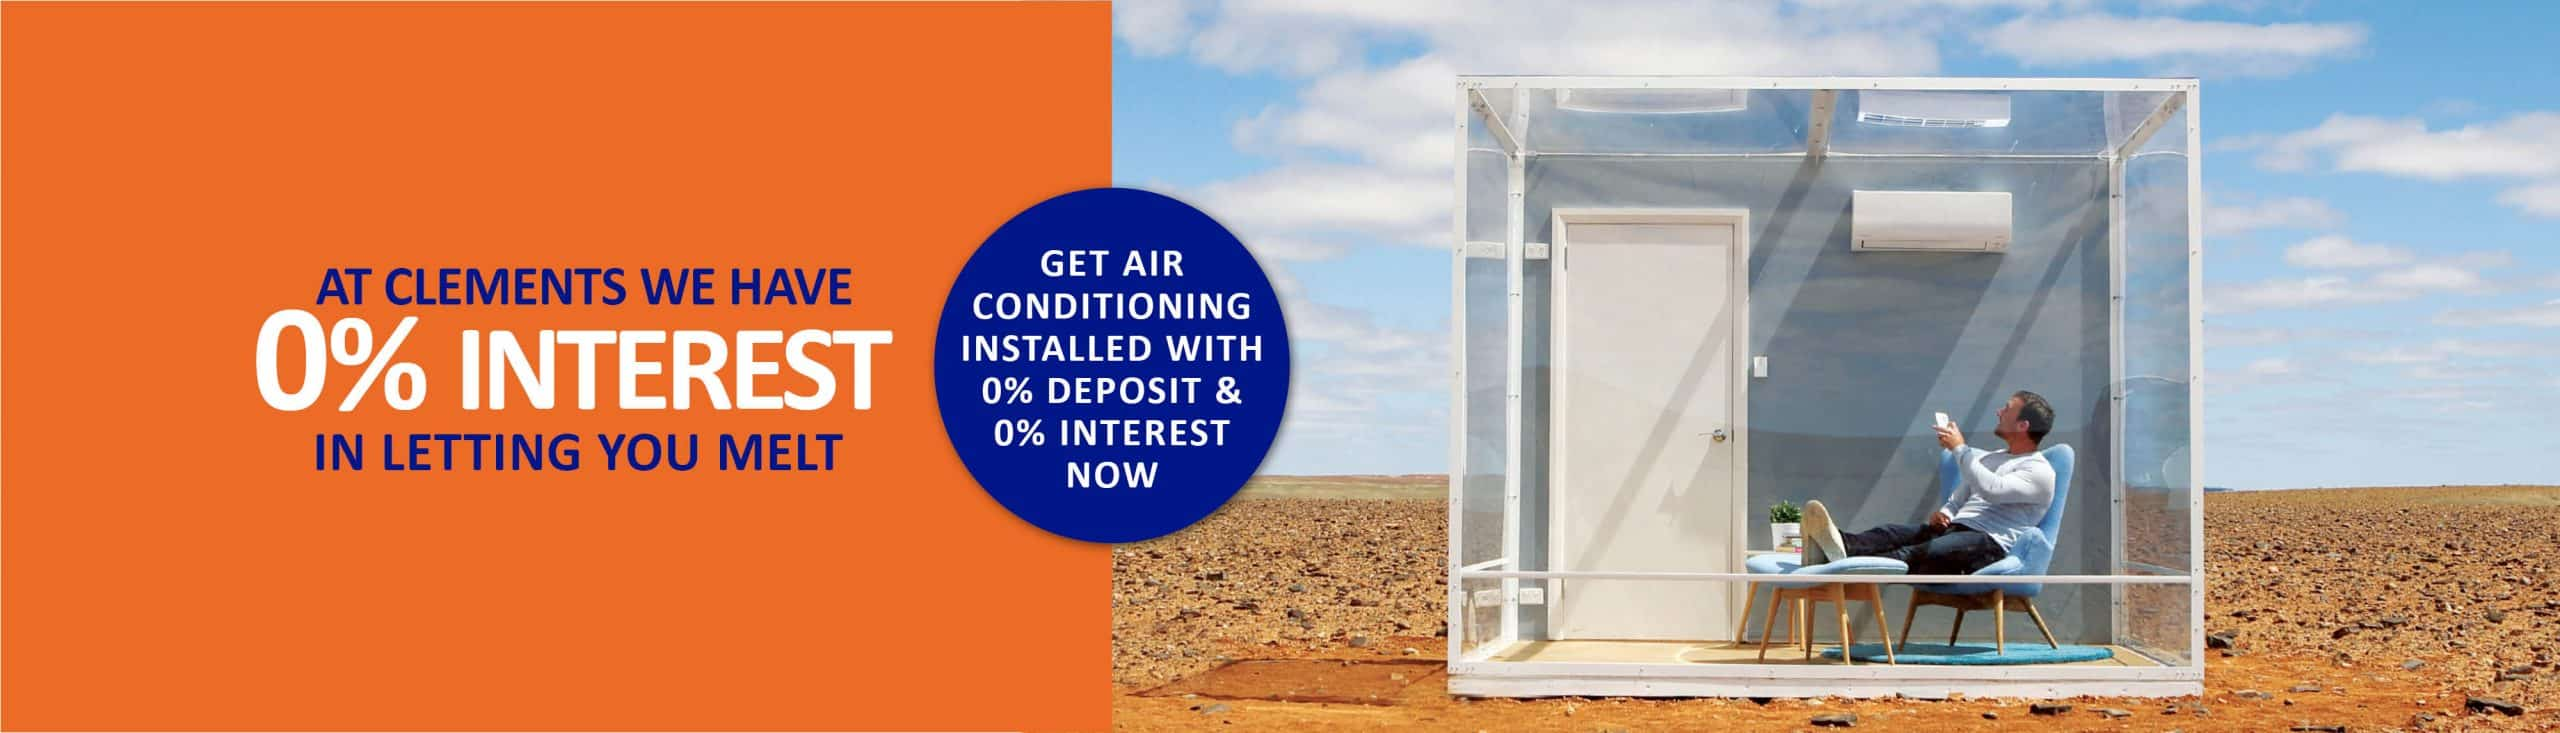 0% interest in letting you melt clements air conditioning